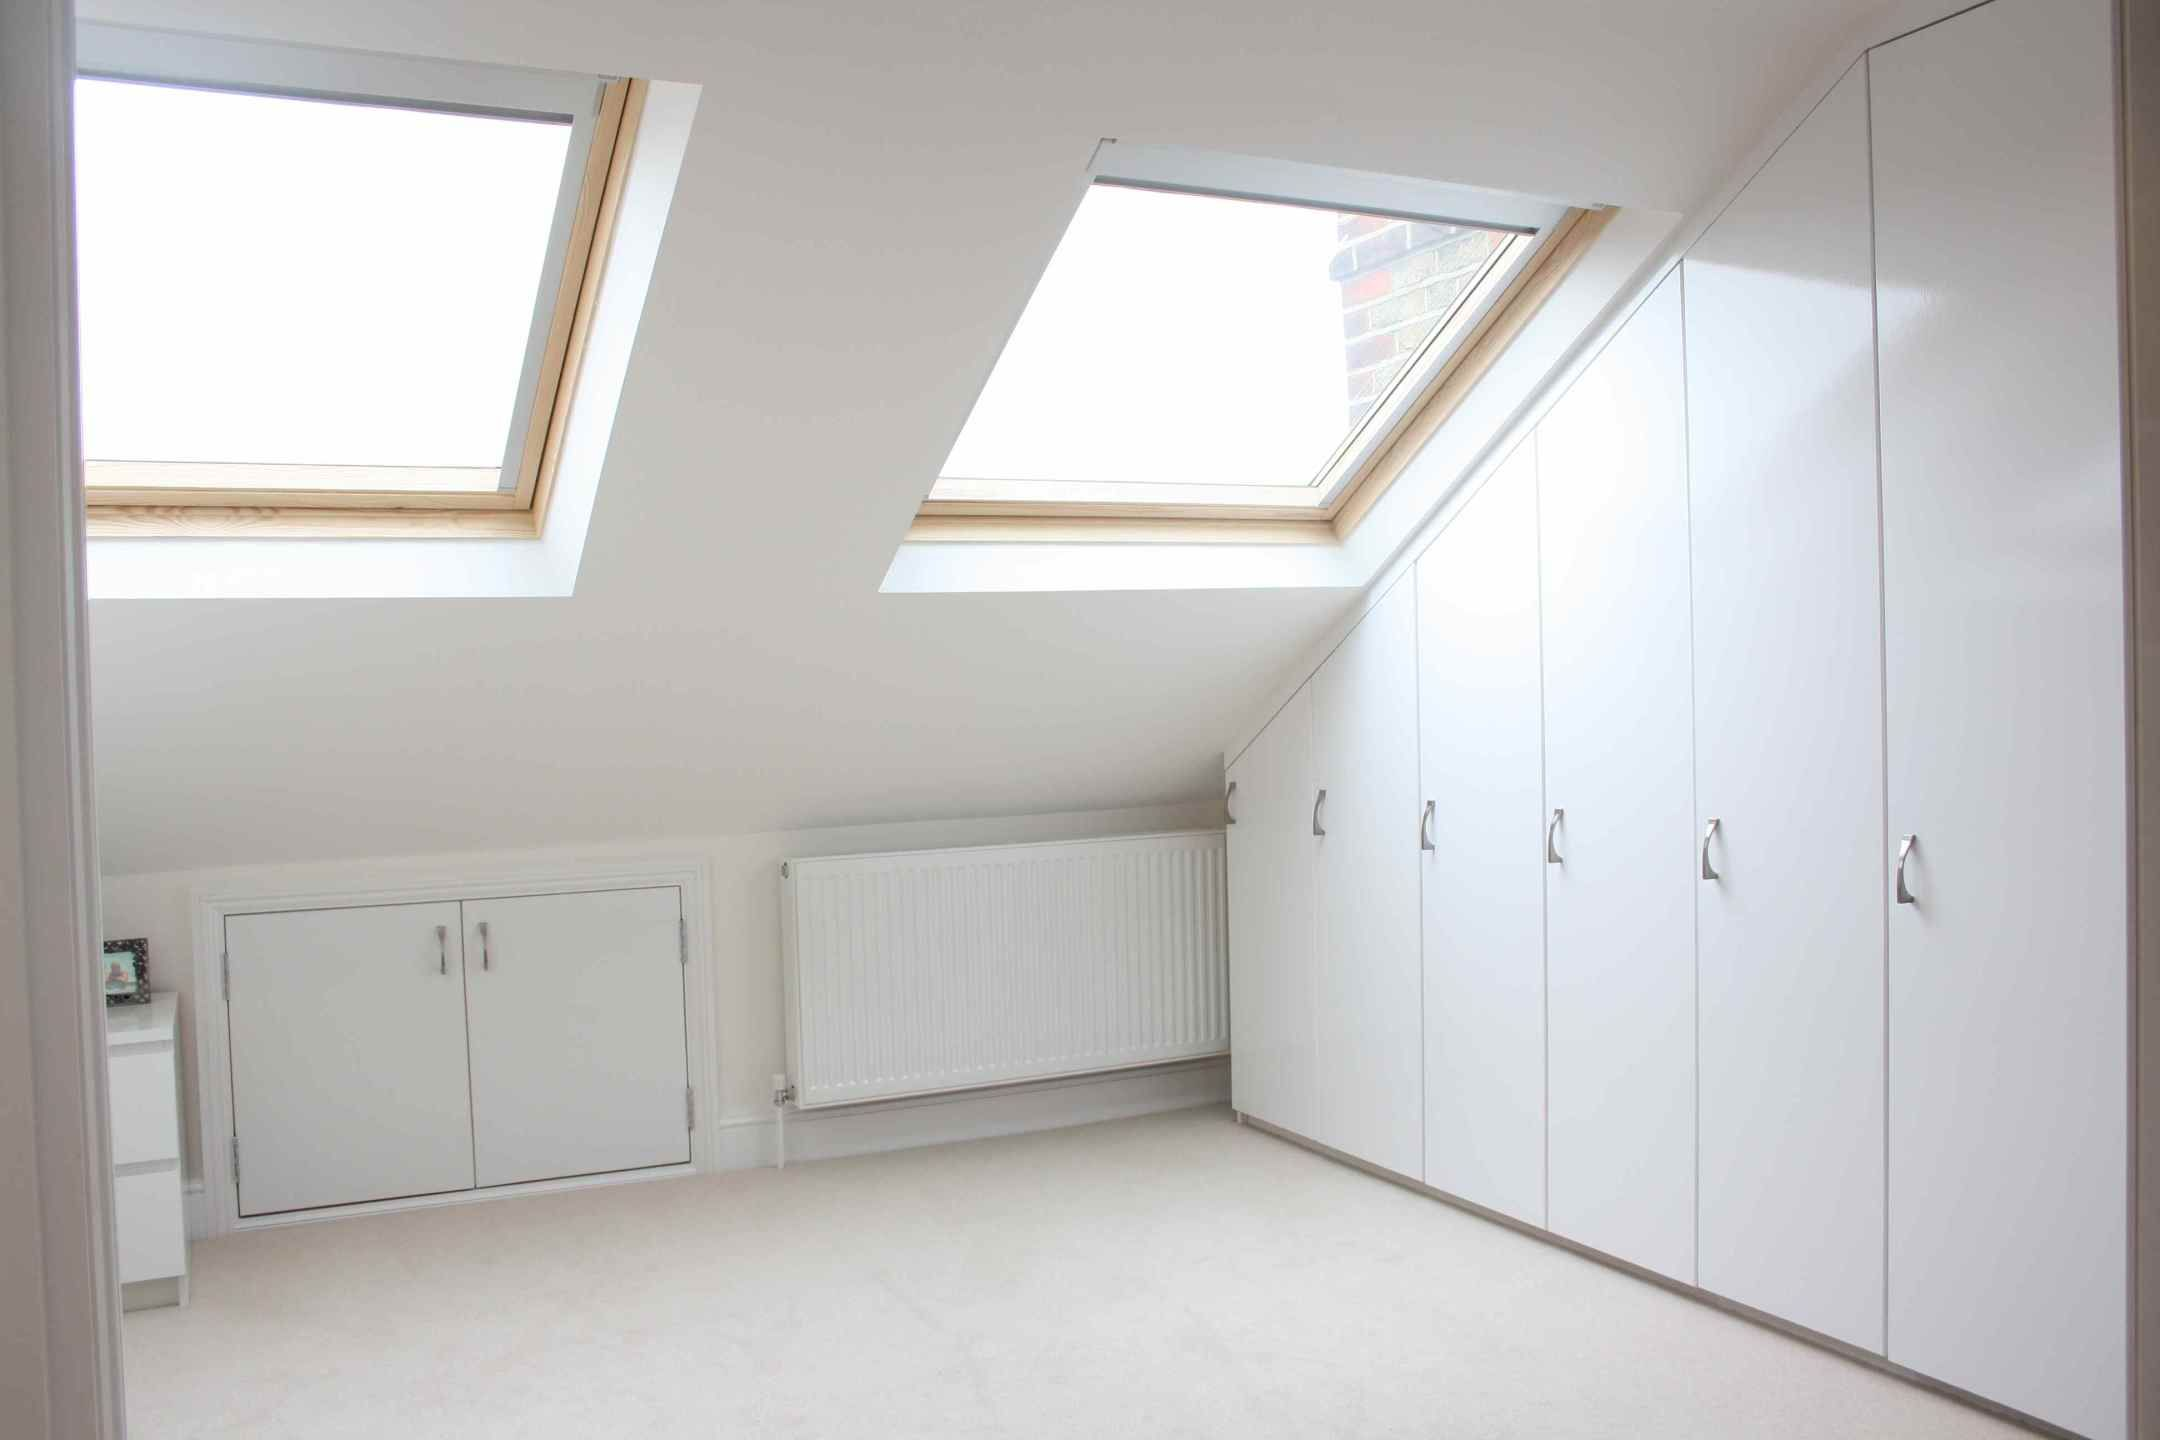 attic storage ideas pinterest  Small loft bedroom, Loft storage